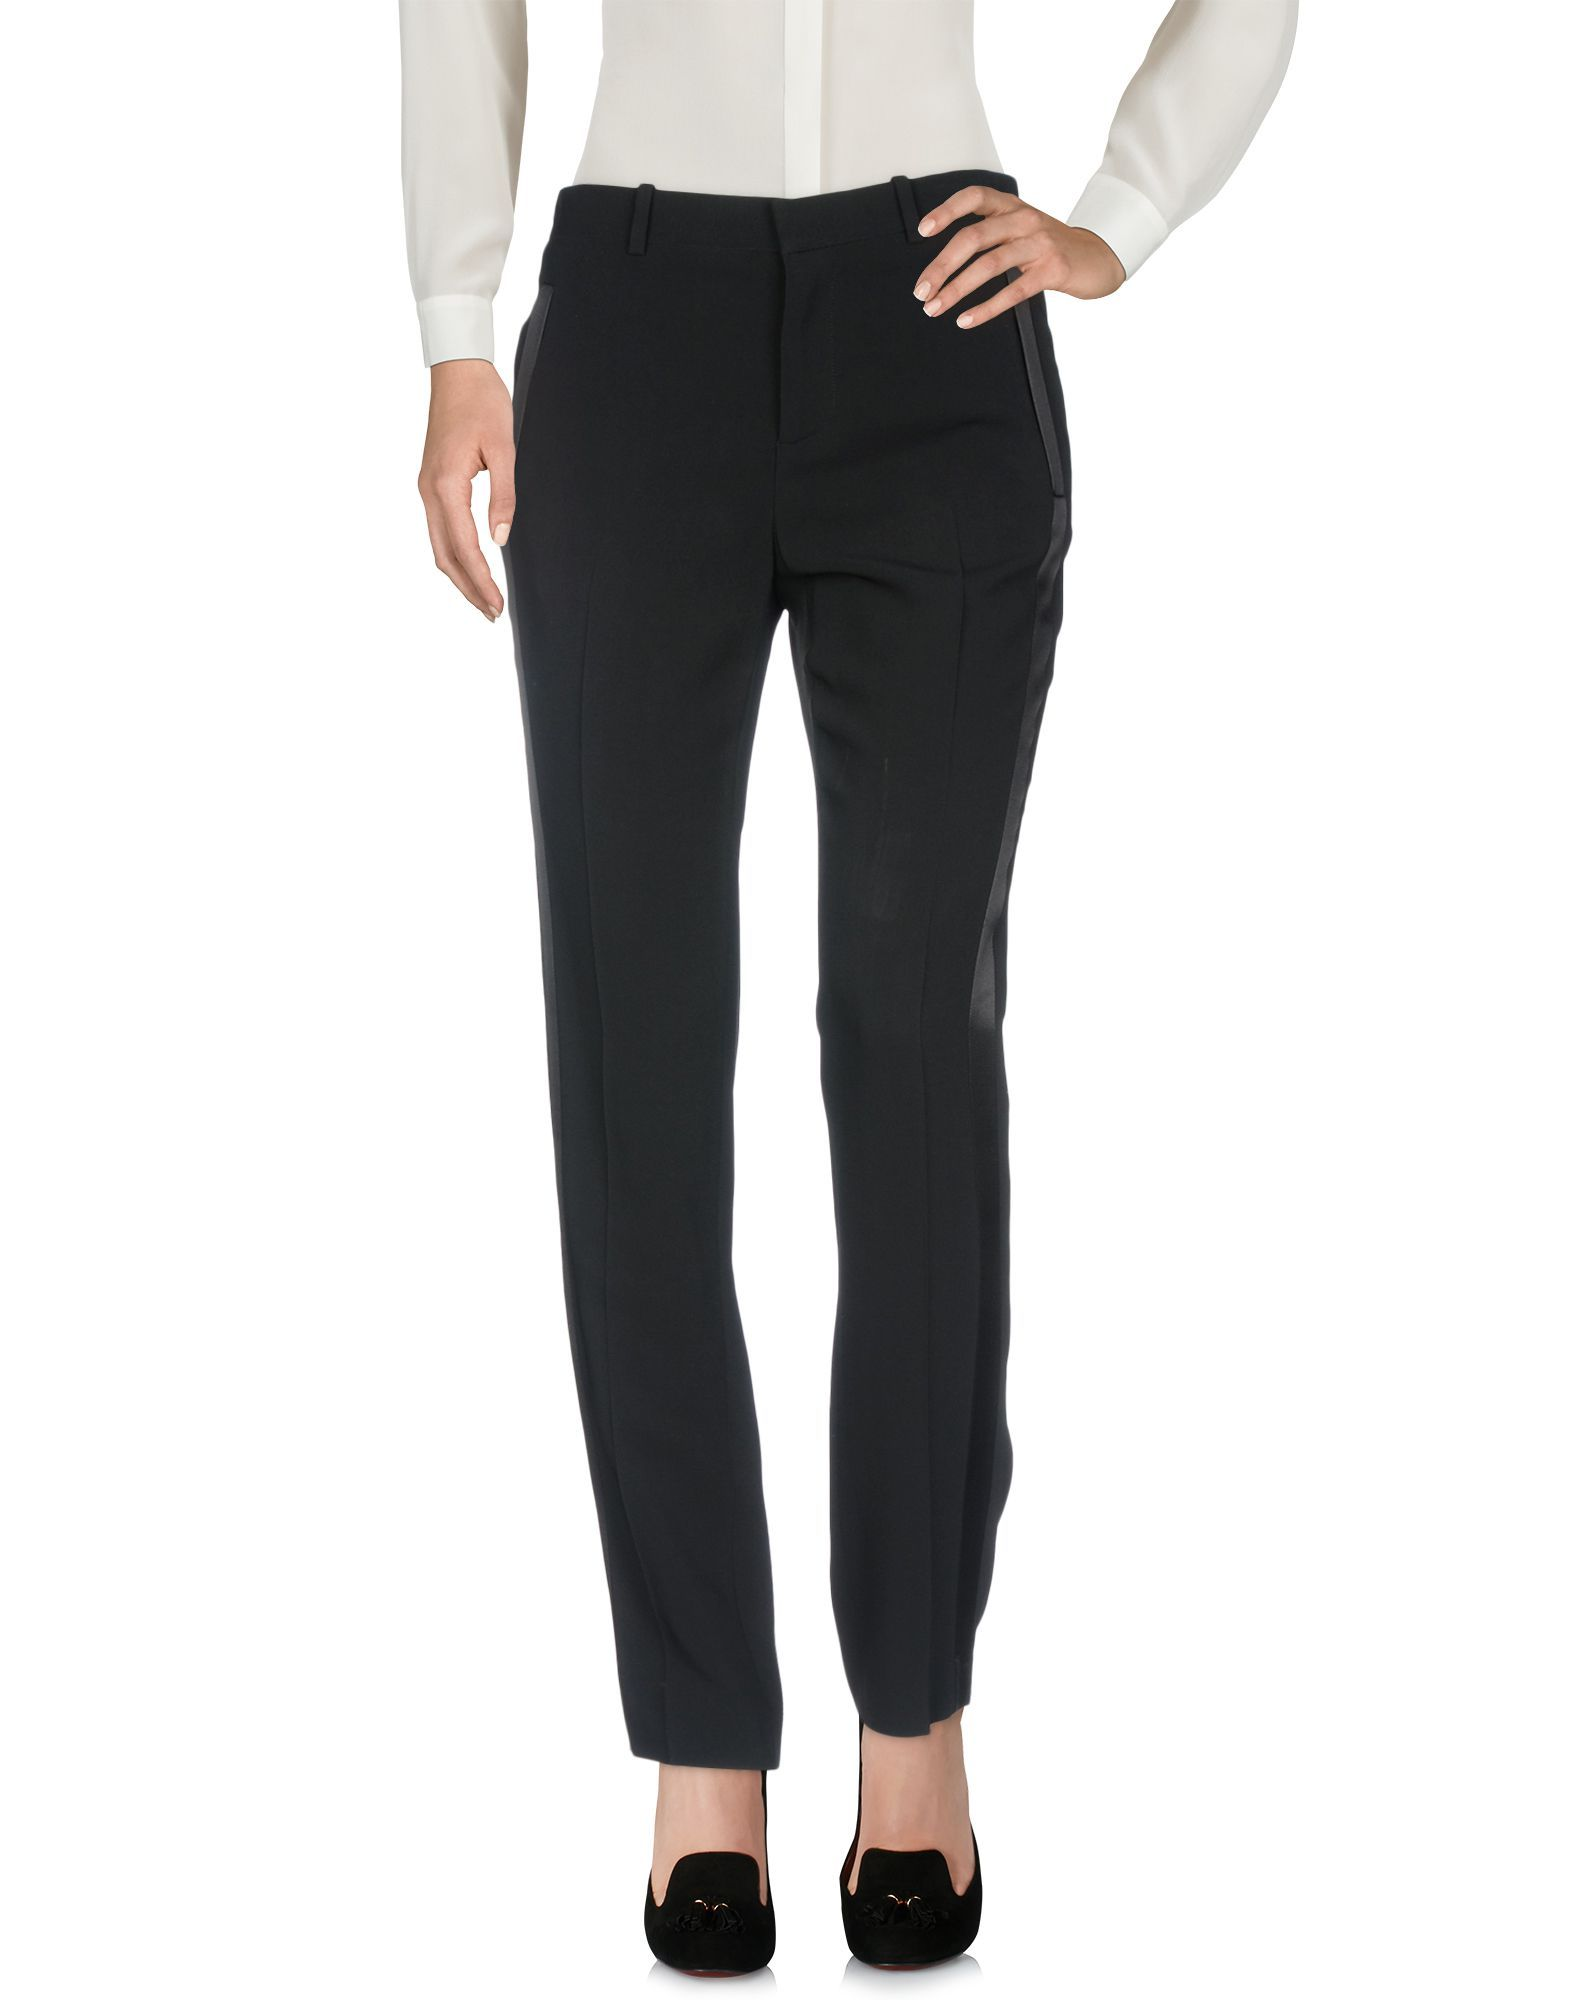 Givenchy Black Tailored Trousers